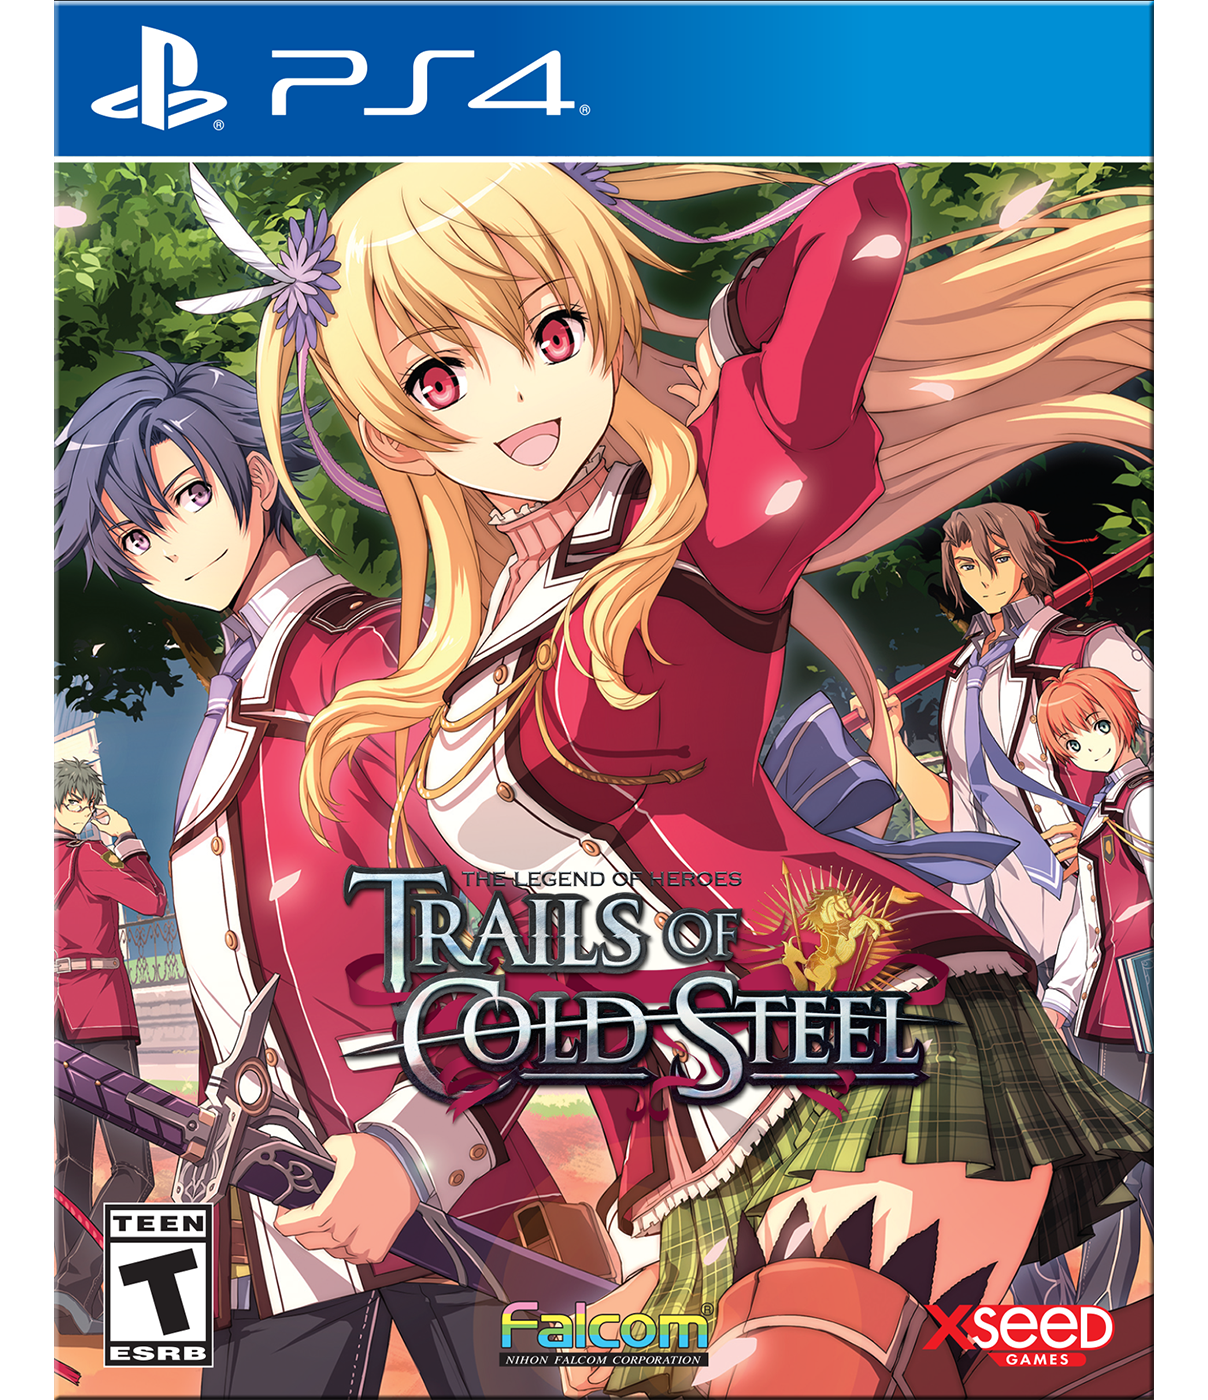 Trails Of Cold Steel World Map.The Legend Of Heroes Trails Of Cold Steel Decisive Edition Ps4